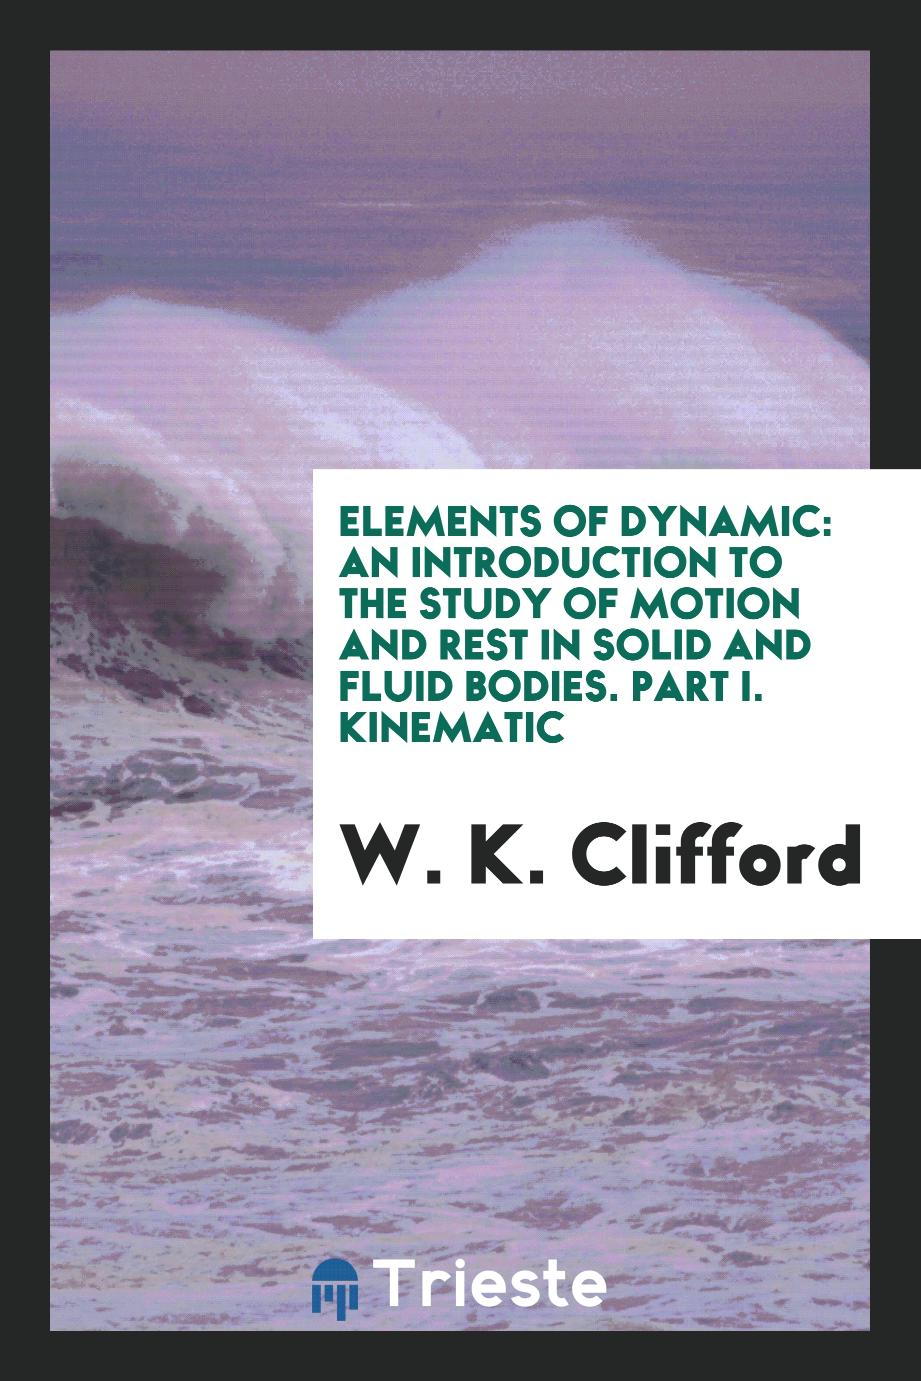 Elements of Dynamic: An Introduction to the Study of Motion and Rest in Solid and Fluid Bodies. Part I. Kinematic